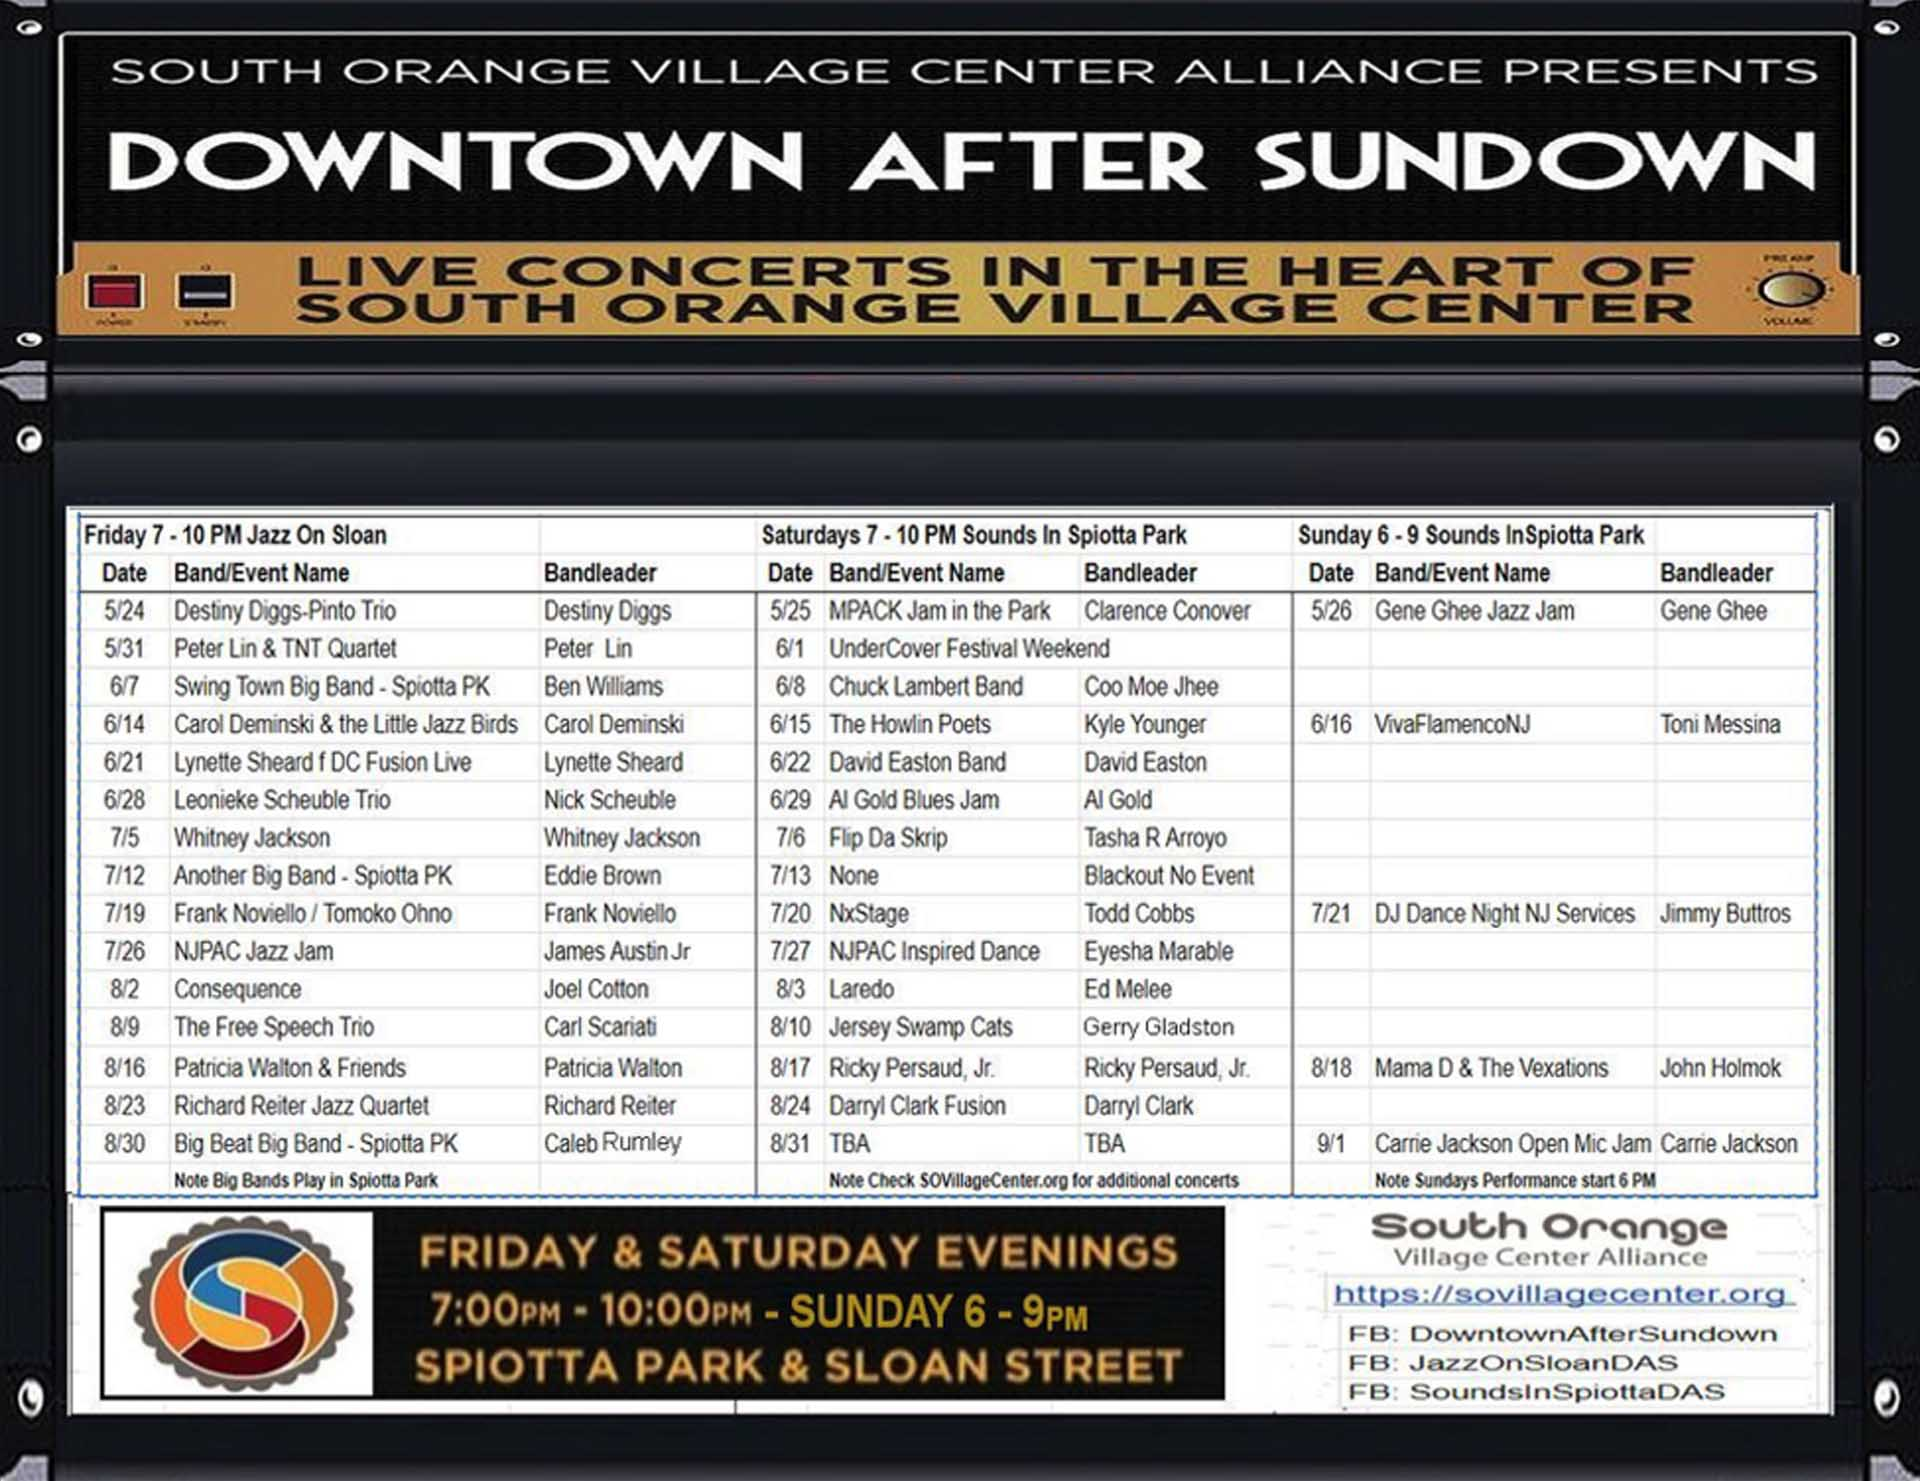 2019 First Look Downtown After Sundown Live Concert Schedule.jpg